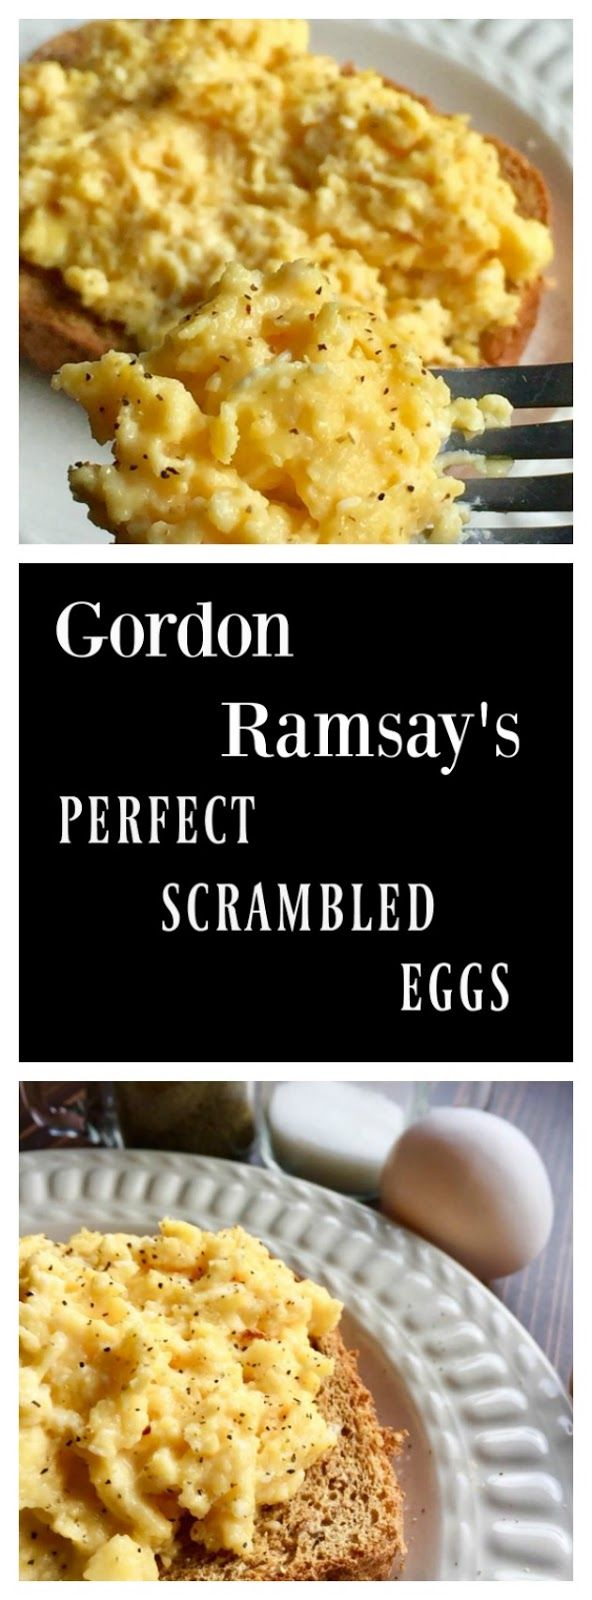 Gordon Ramsay's Perfect Scrambled Eggs http://www.keatseats.com/2017/12/gordon-ramsays-perfect-scrambled-eggs.html?utm_campaign=coschedule&utm_source=pinterest&utm_medium=Something%20Swanky&utm_content=Gordon%20Ramsay%27s%20Perfect%20Scrambled%20Eggs